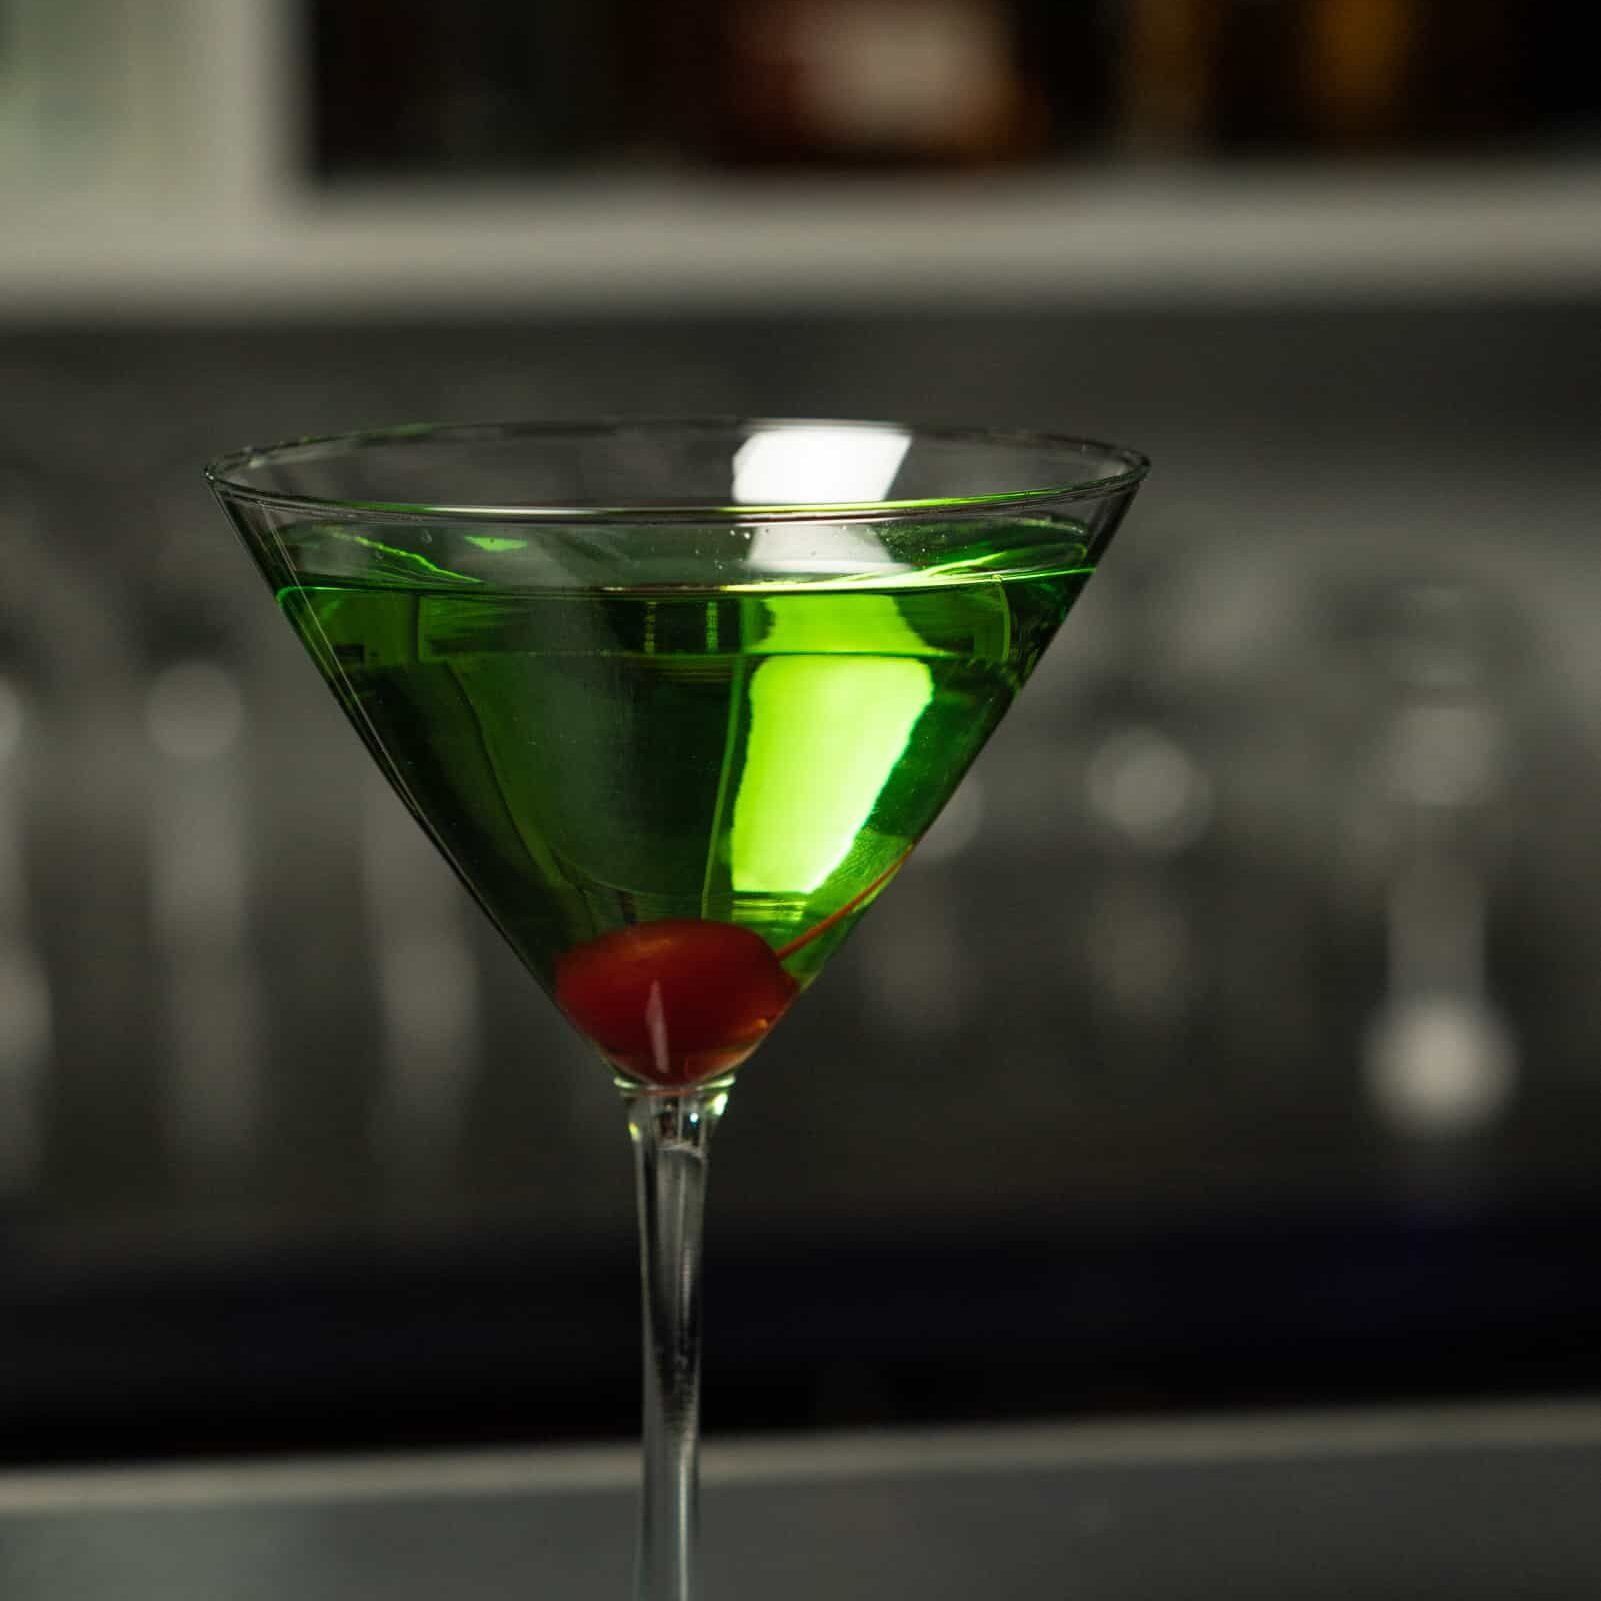 Green alcoholic cocktail in a cocktail glass with a cherry in the bottom